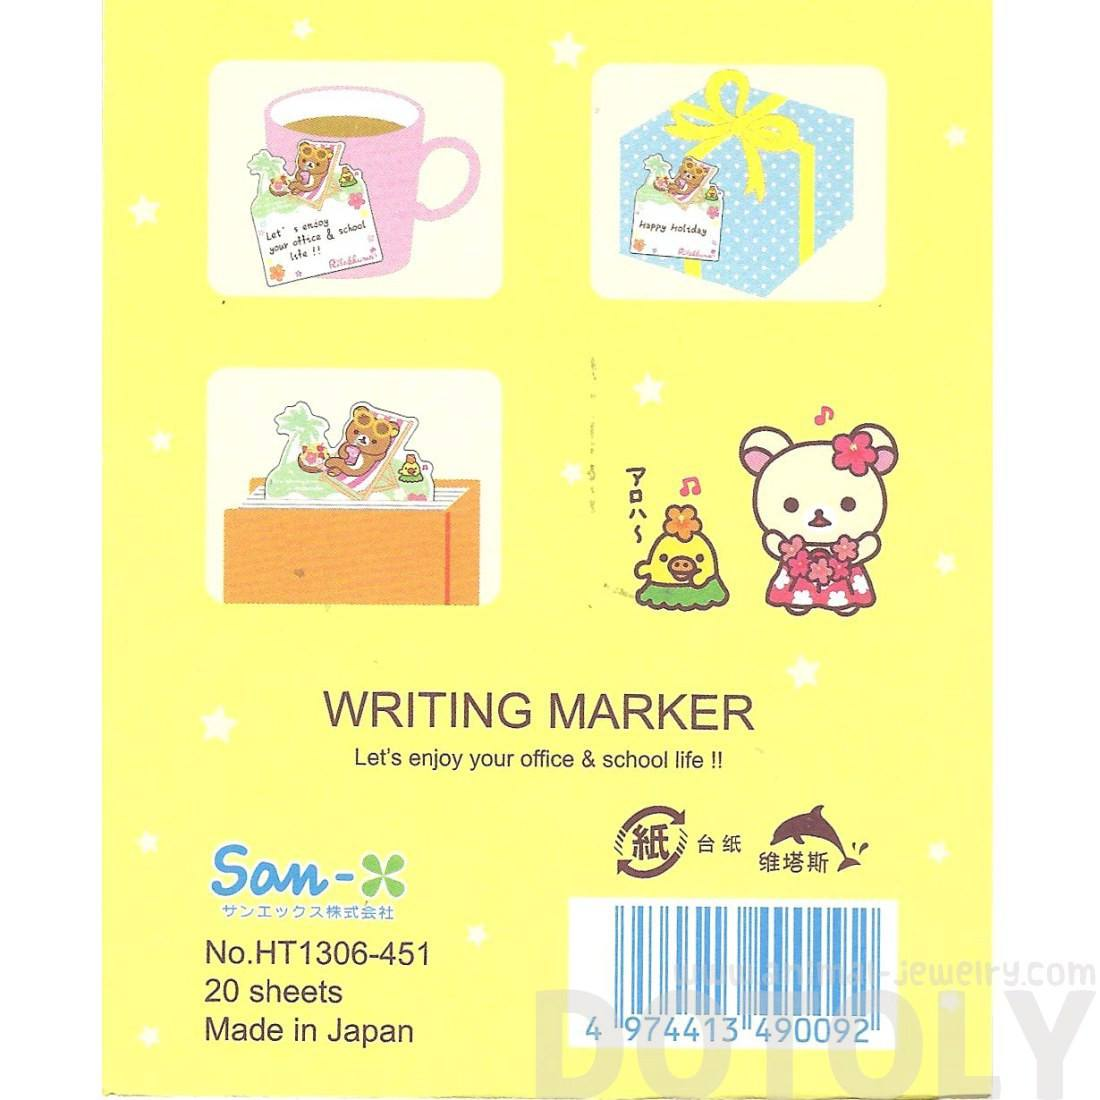 Rilakkuma Teddy Bear and Beach Chair Shaped Adhesive Post-it Memo Pads